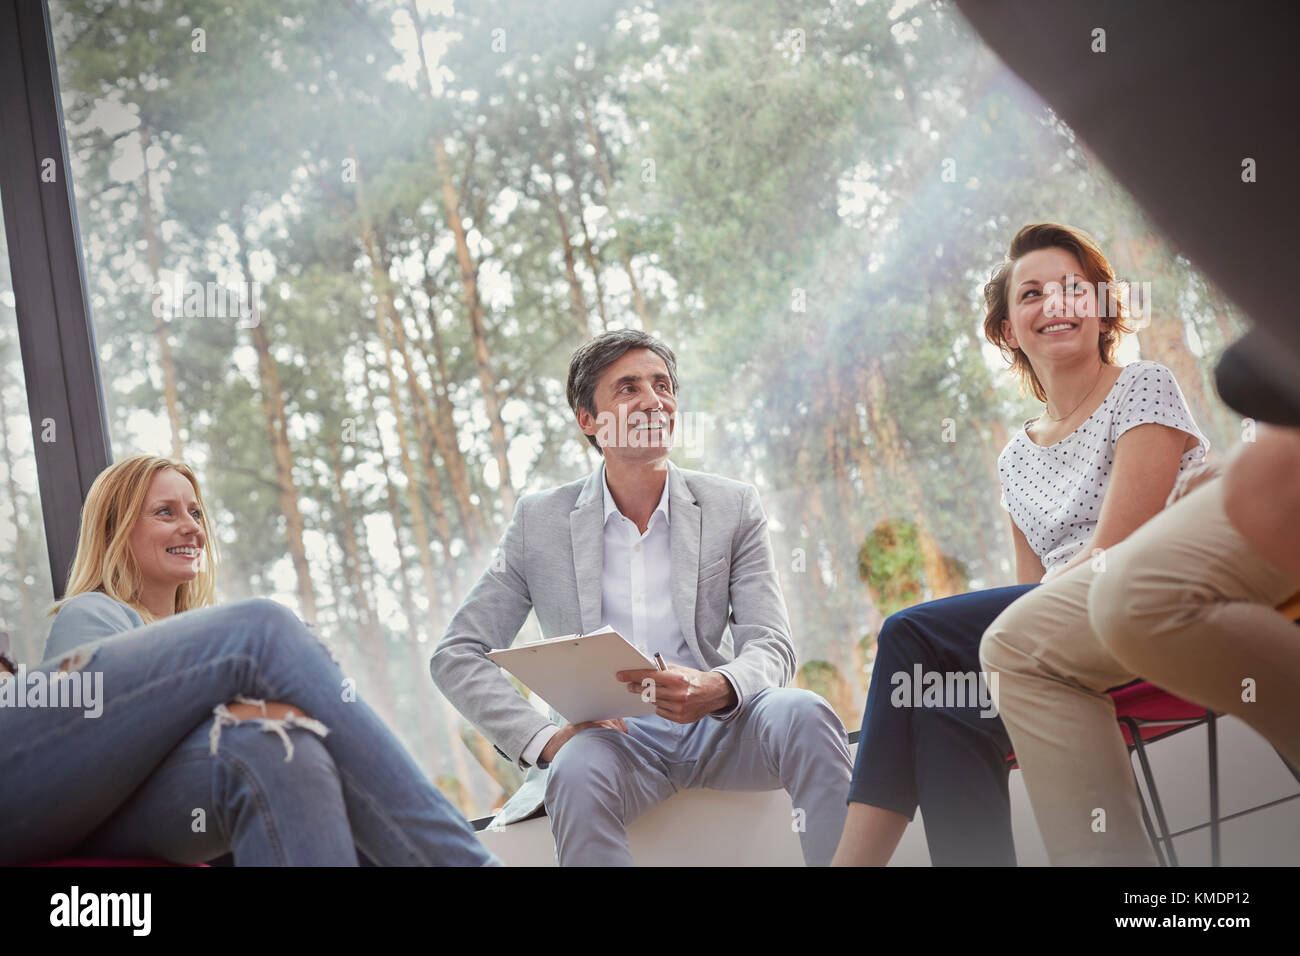 Smiling people talking in group therapy session - Stock Image